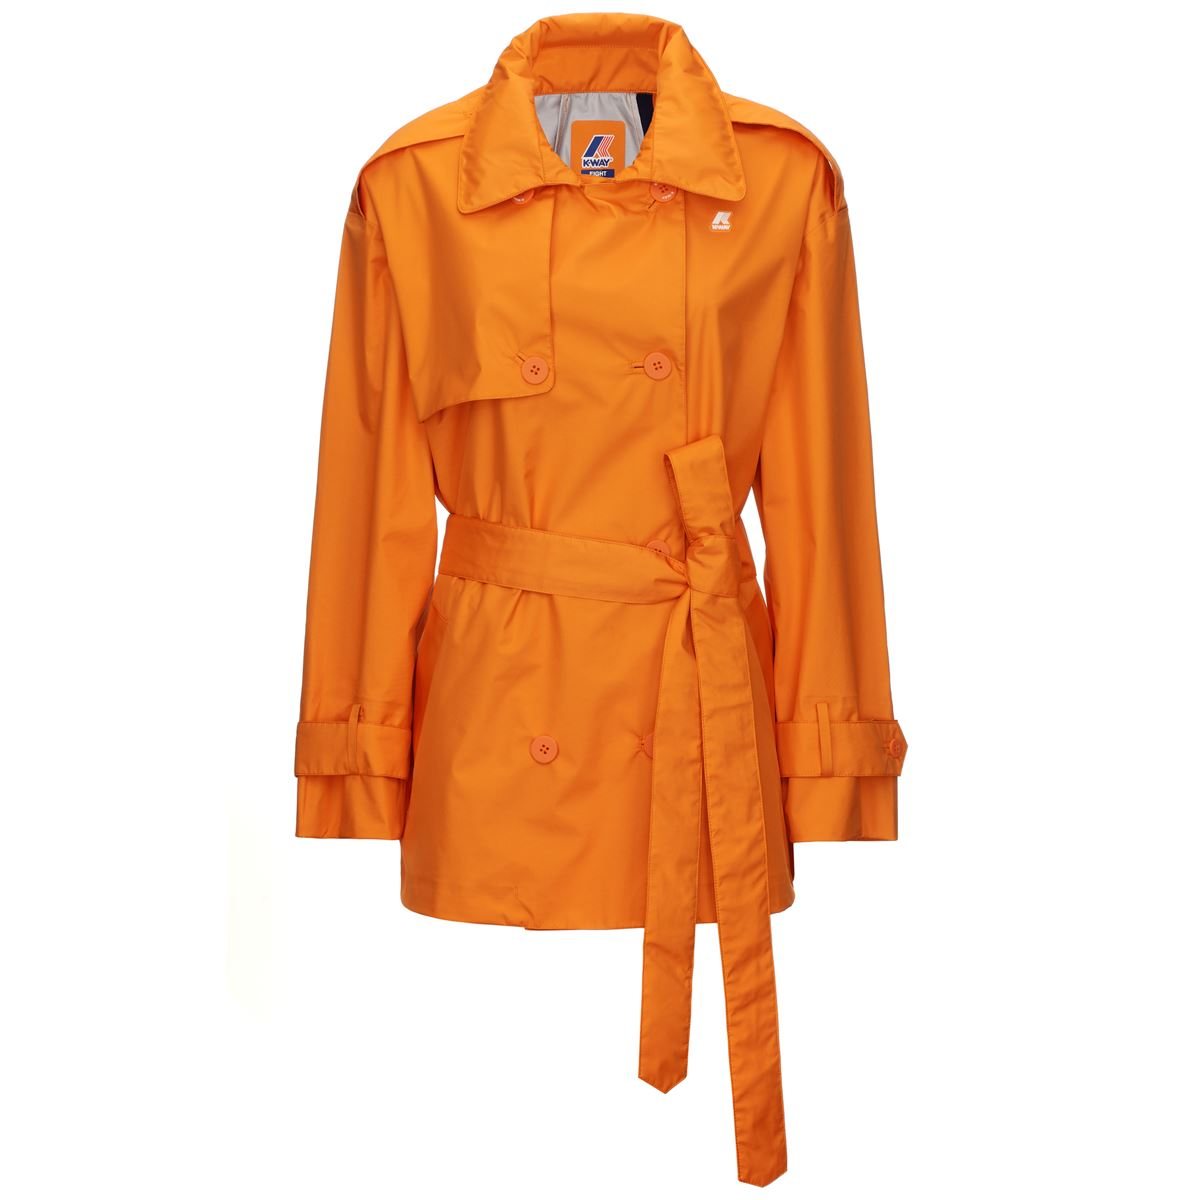 KWAY      K111PPW026